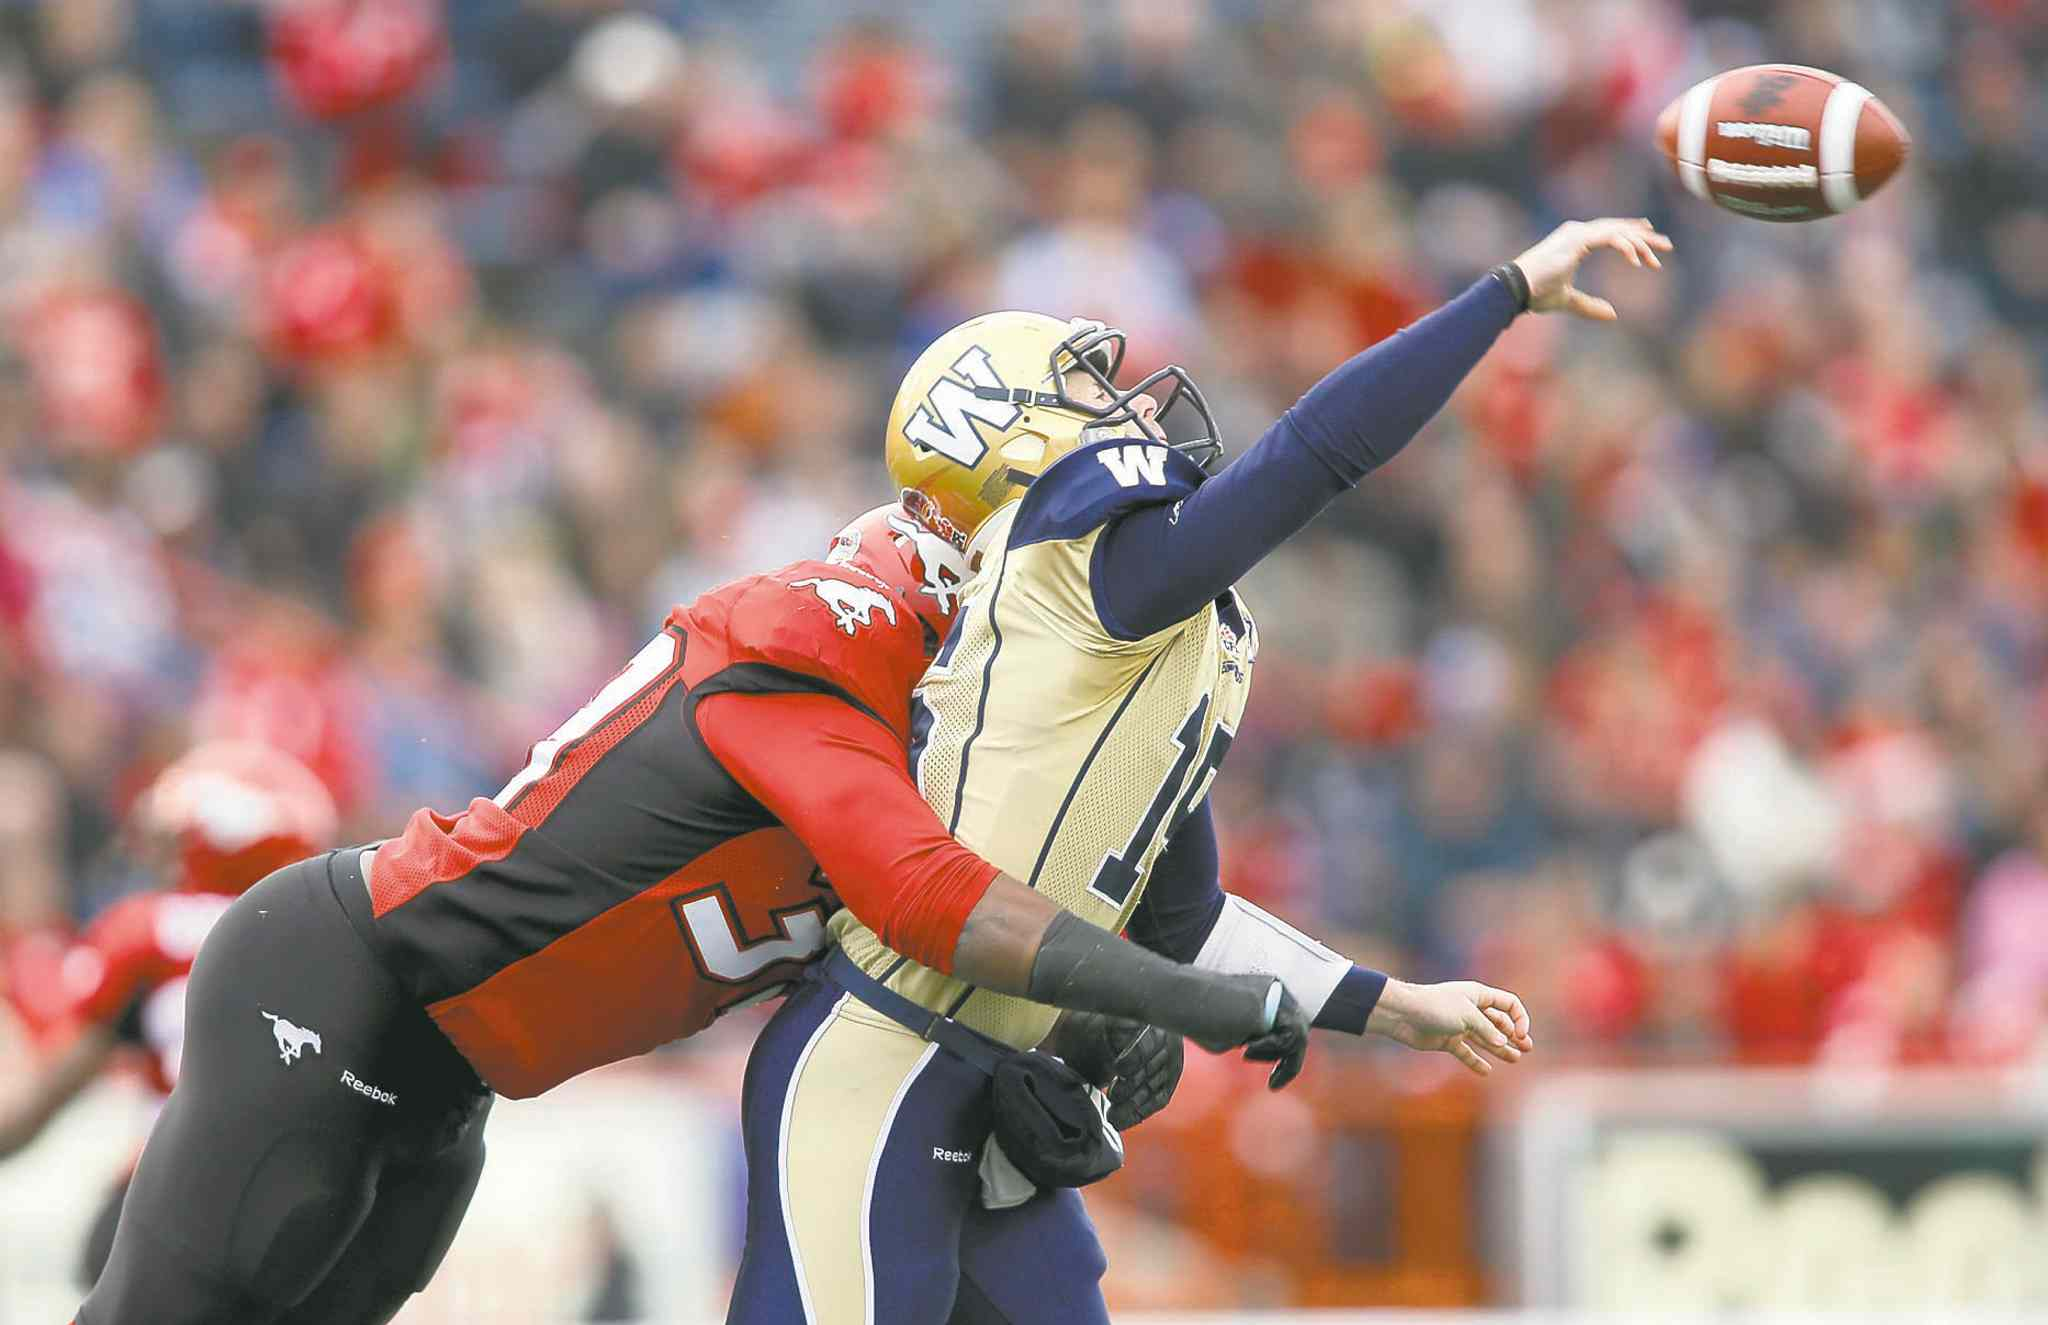 Blue Bombers' quarterback Max Hall takes a bone-rattling hit from Calgary Stampeders defensive lineman Charleston Hughes Saturday.